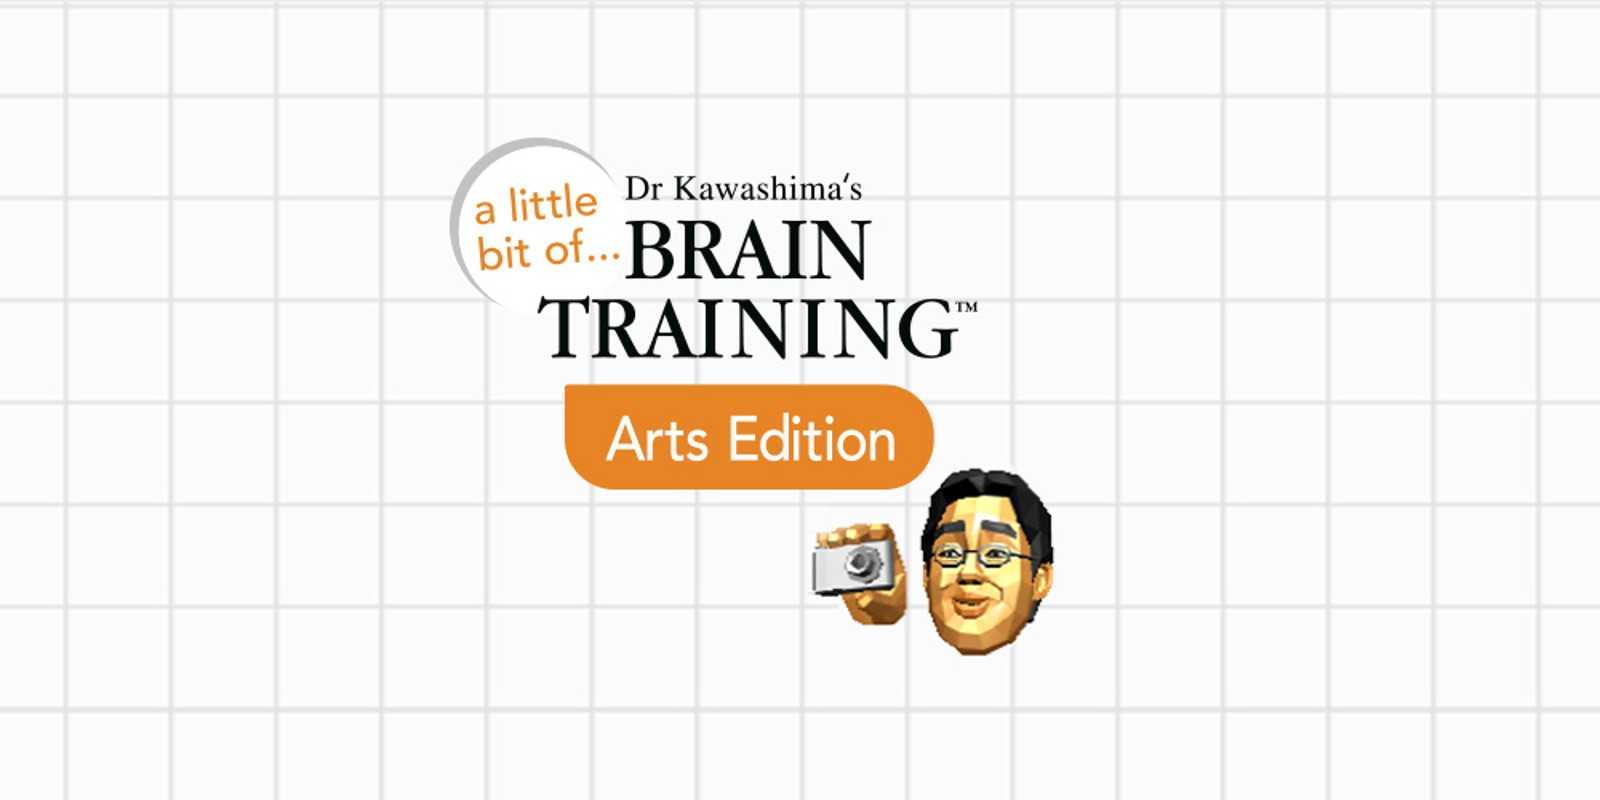 A Little Bit of... Dr Kawashima's Brain Training™: Arts Edition